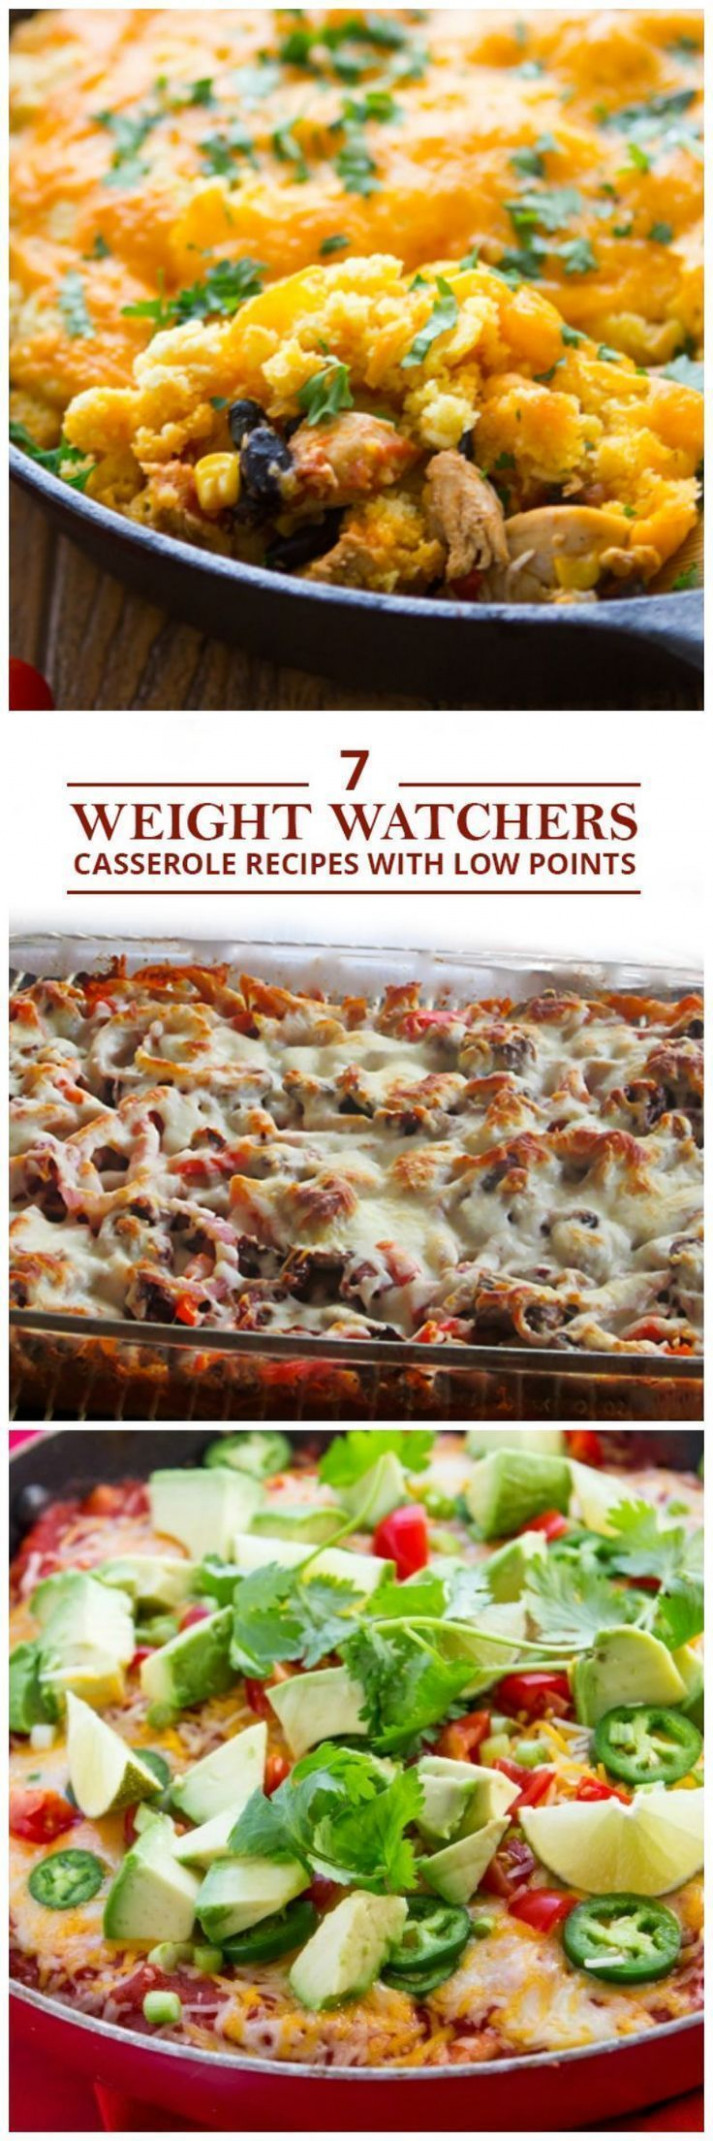 7 Weight Watchers Casserole Recipes with Low Points